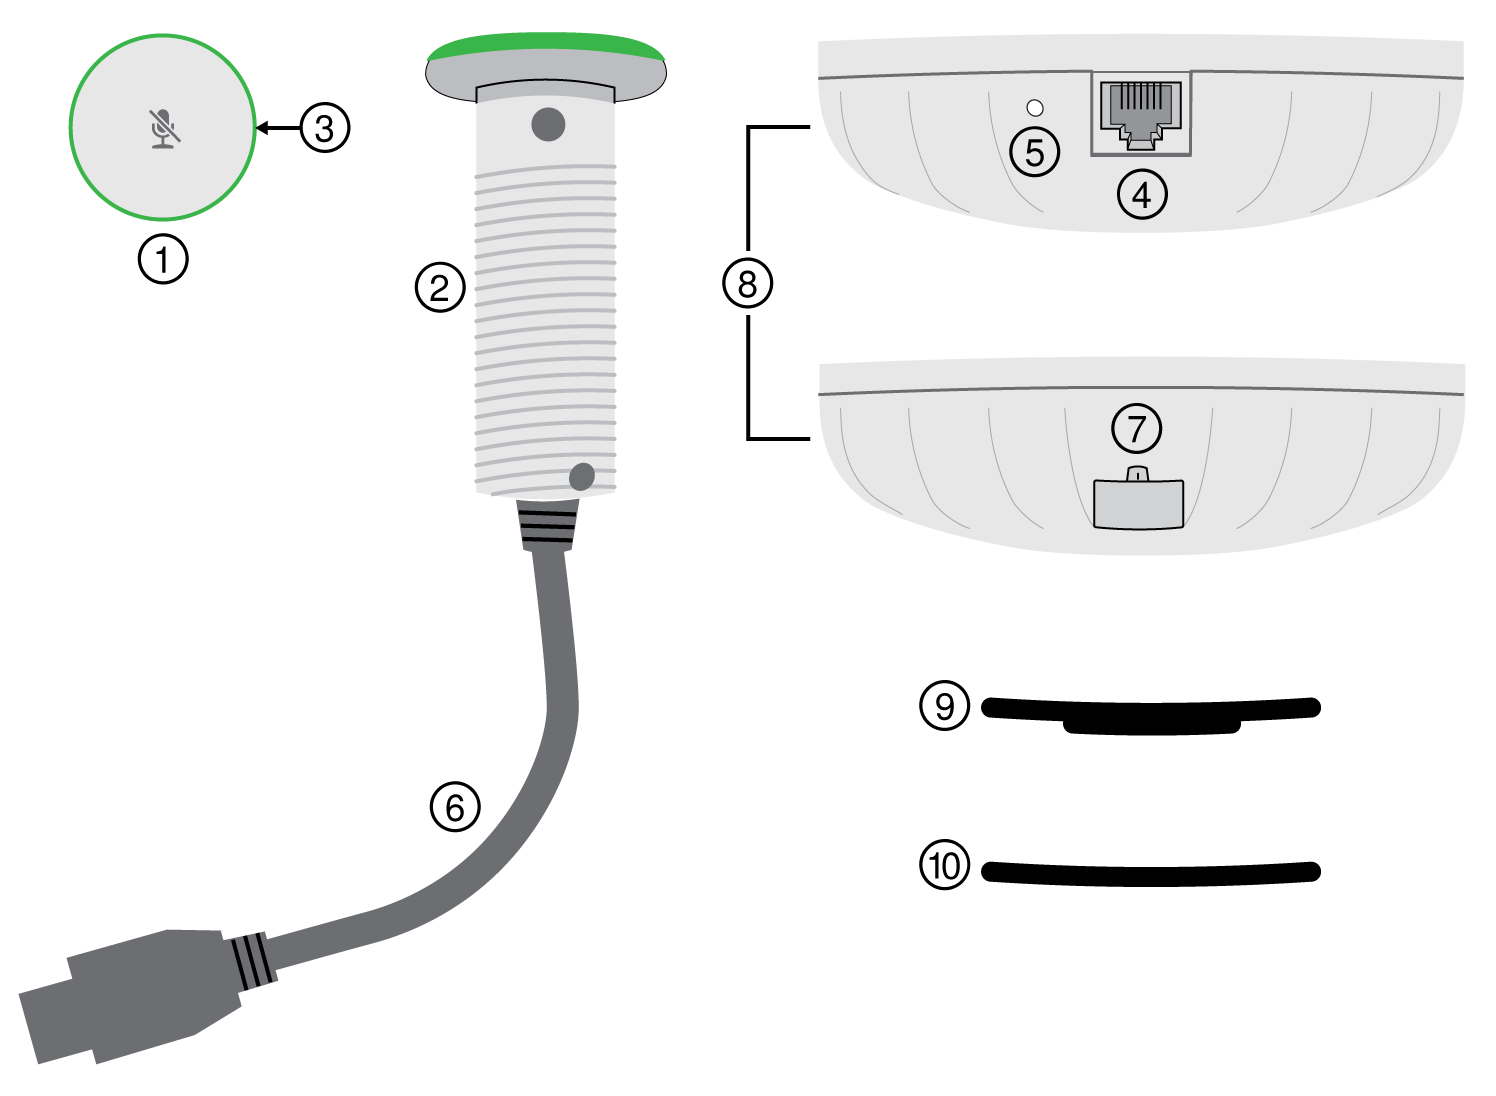 Numbered diagram showing the different parts of the MXA network mute button.